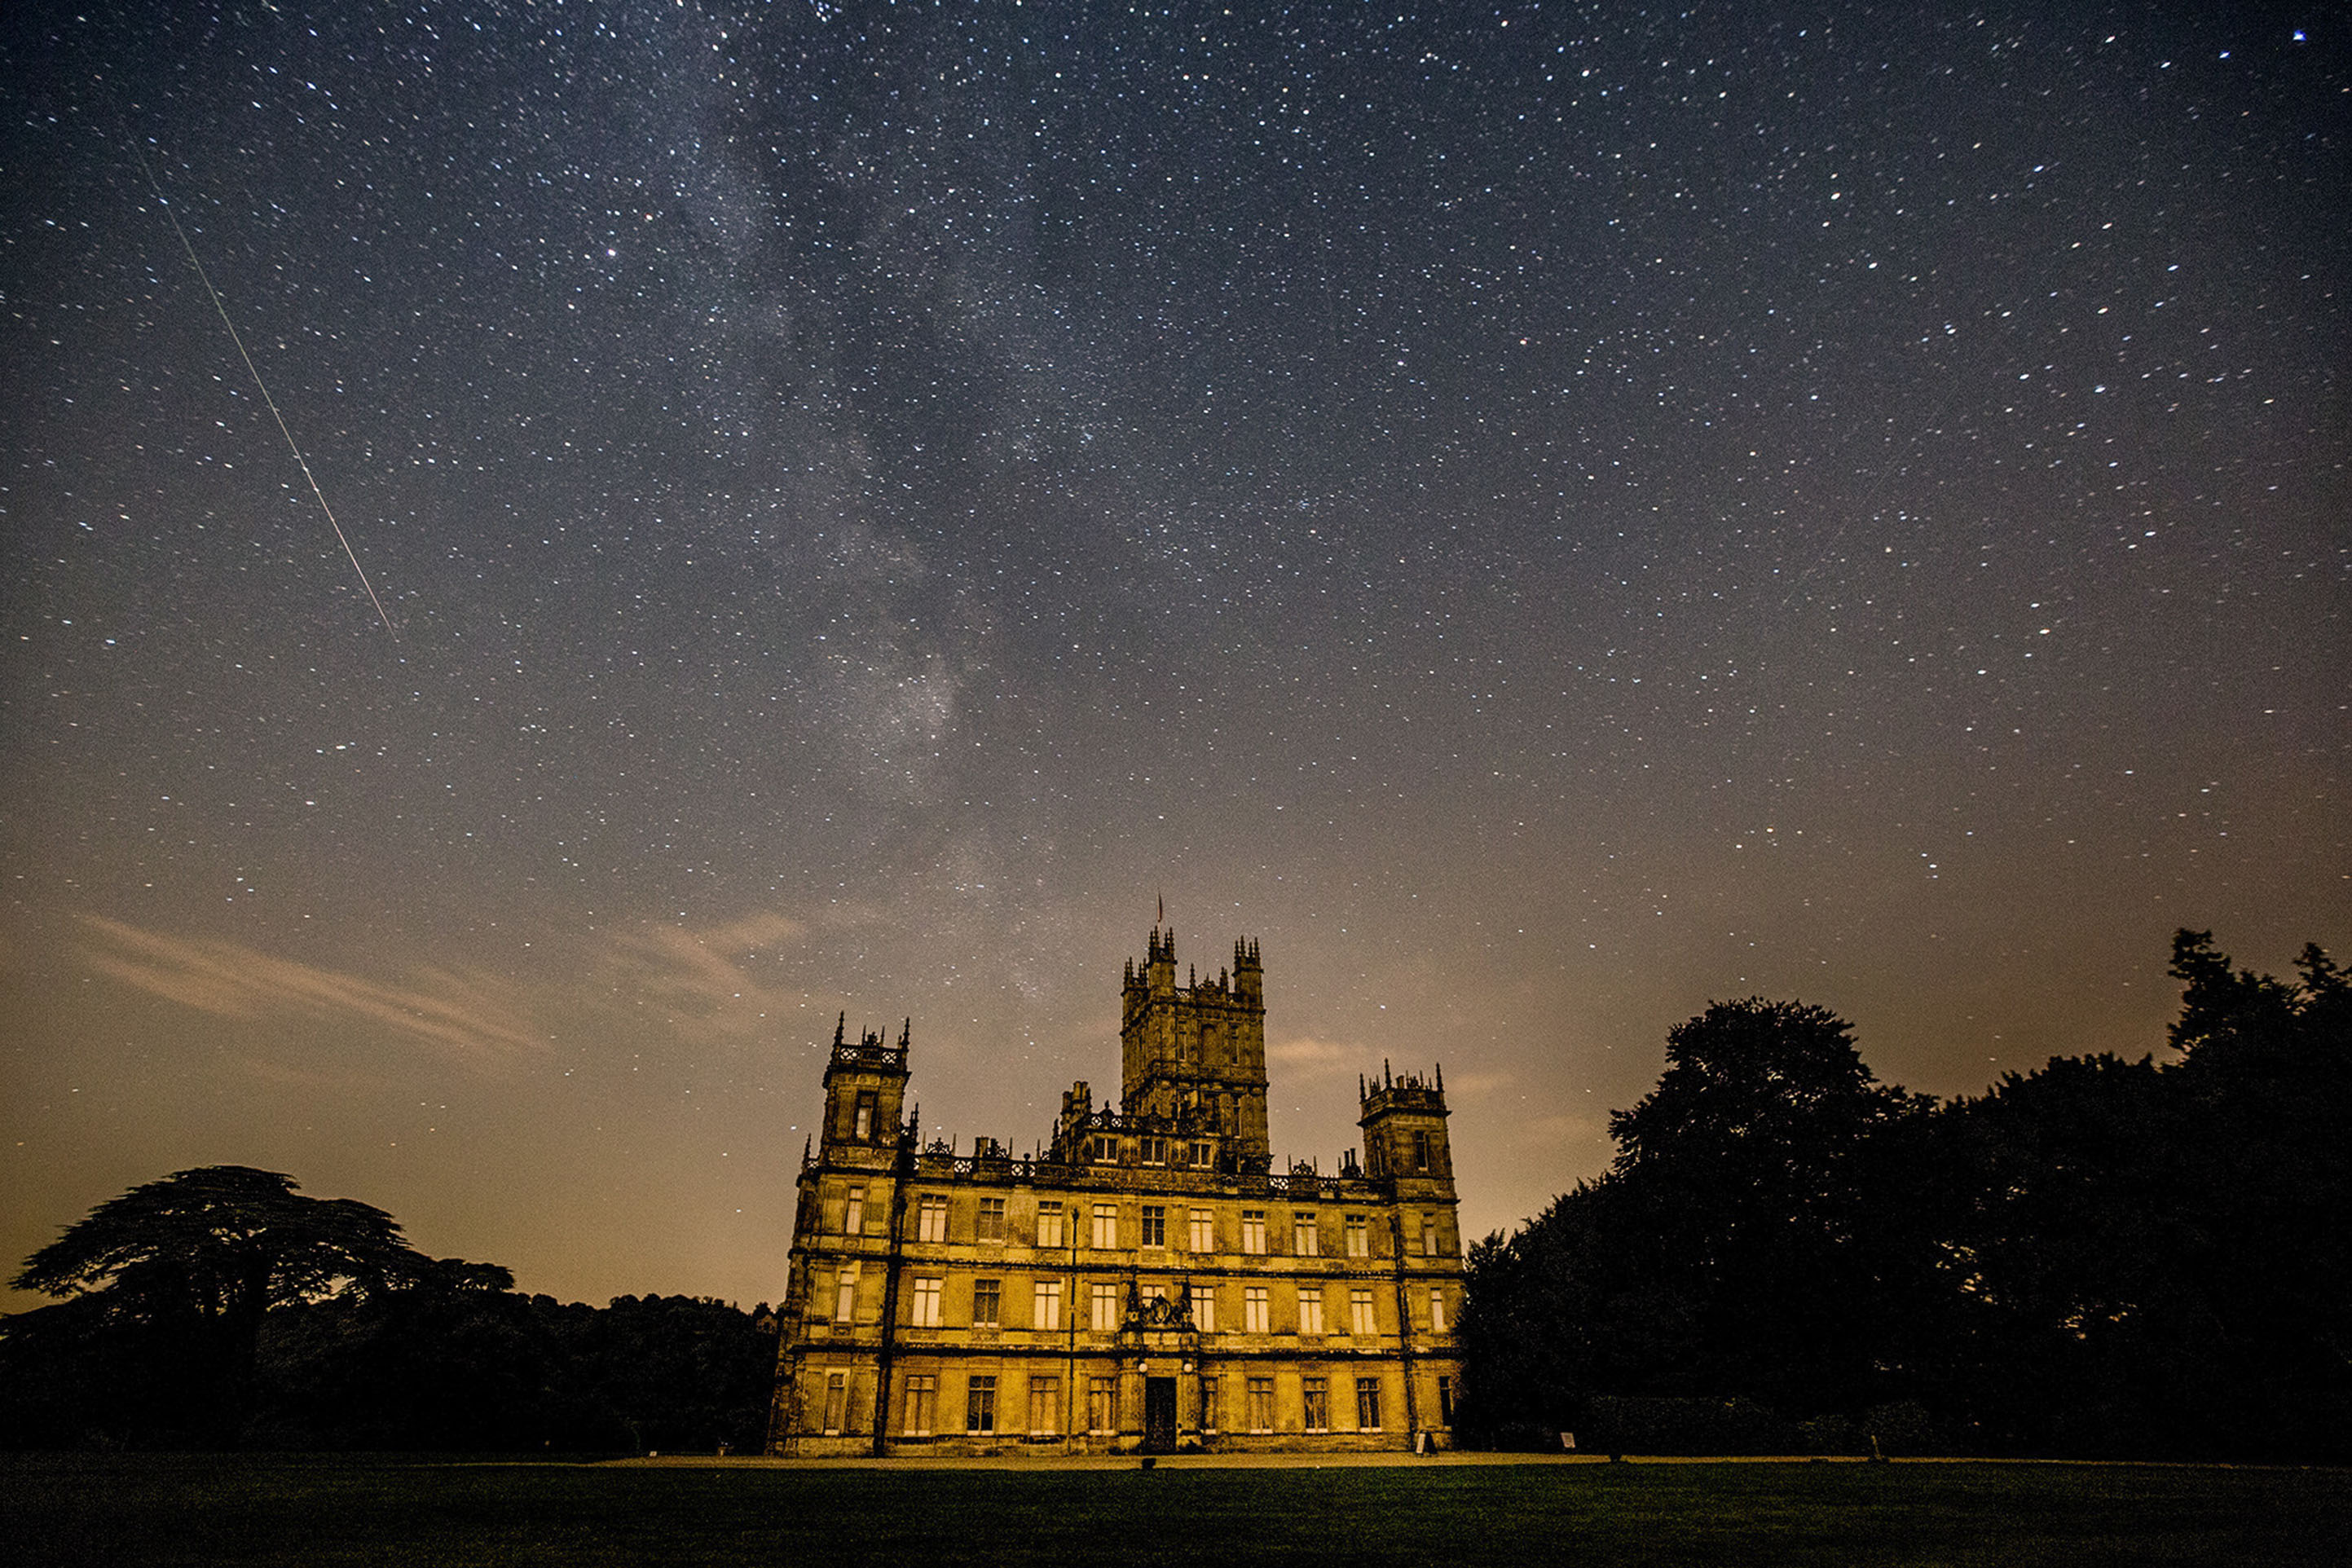 You can now spend one night in Highclere Castle, the real-life Downton Abbey